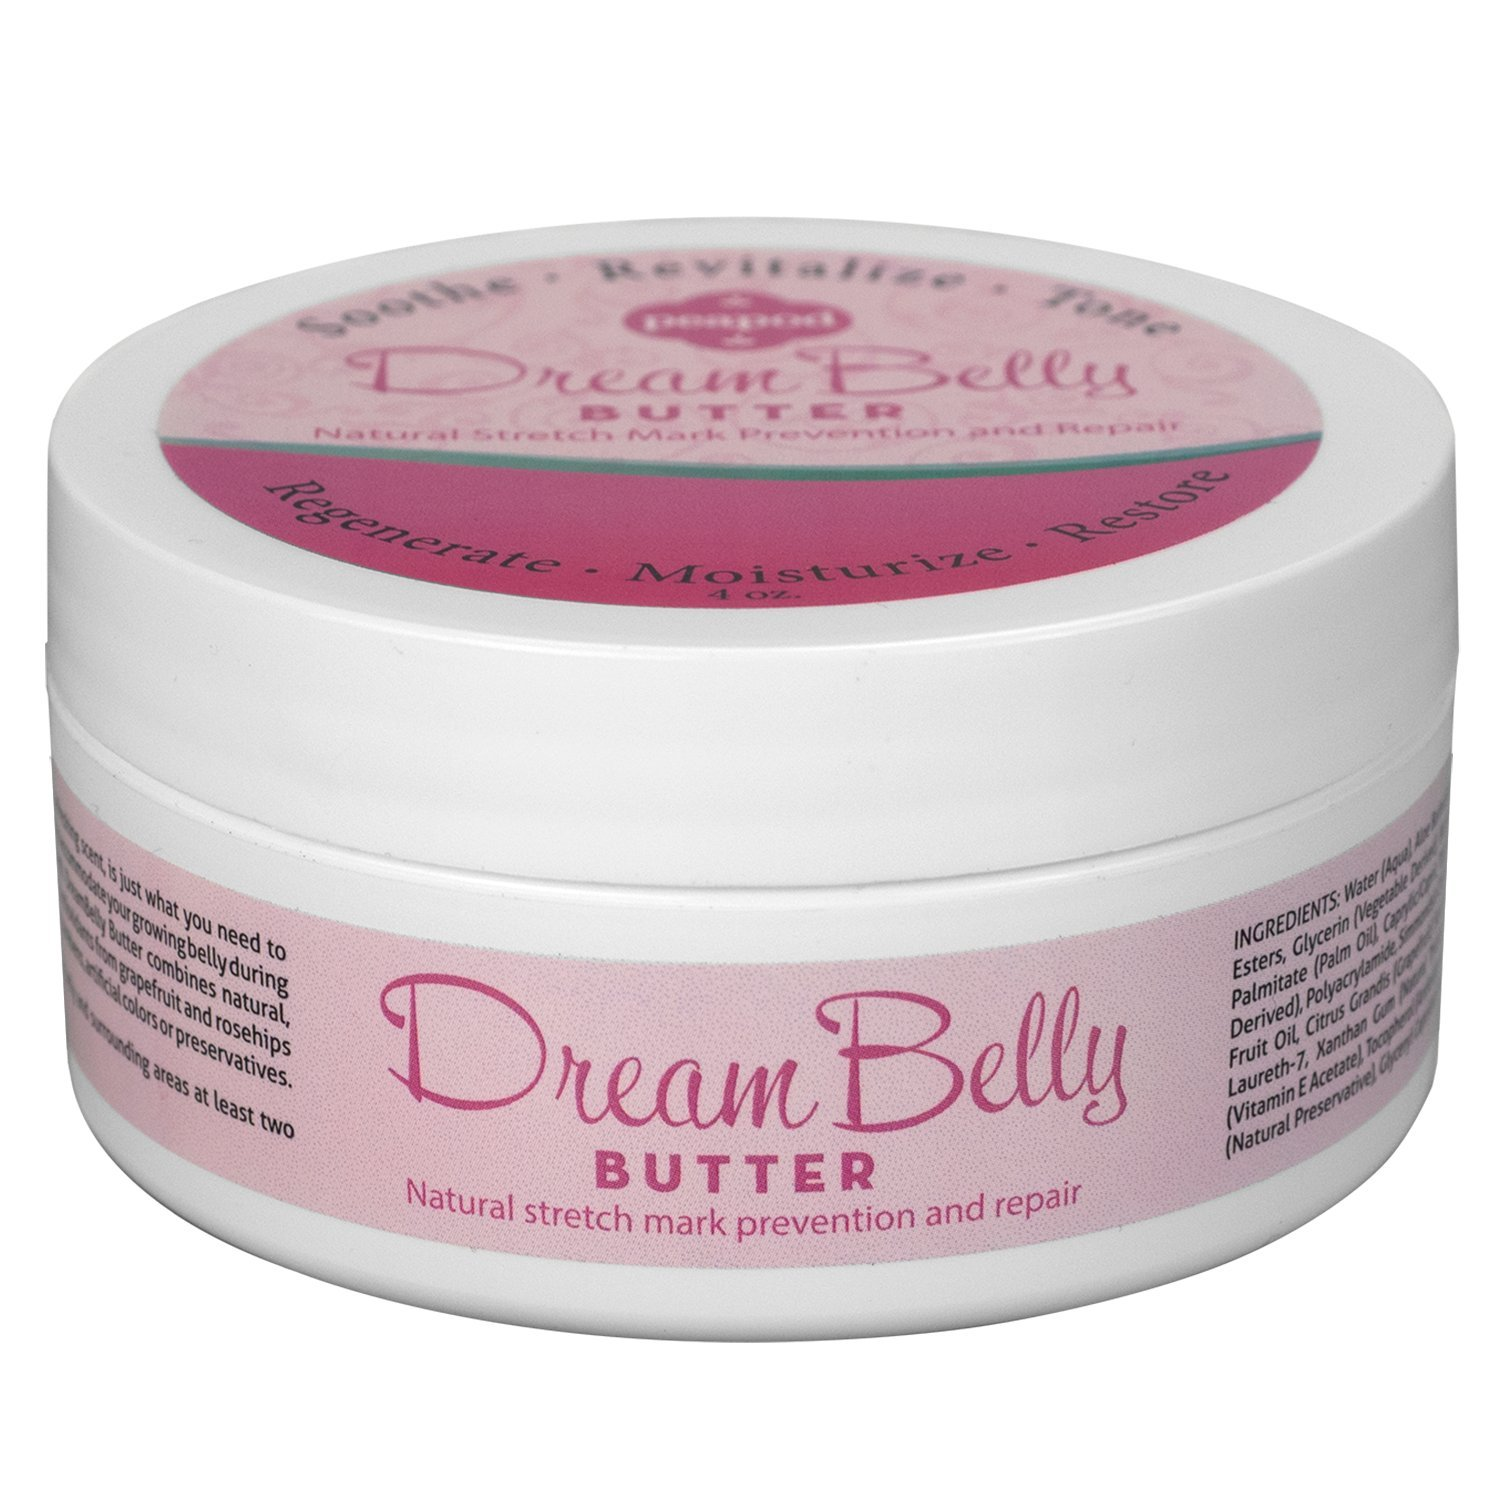 DreamBelly Stretch Mark Butter, 4 oz, No Itch, No Stretch Marks, All Natural! Fairhaven Health